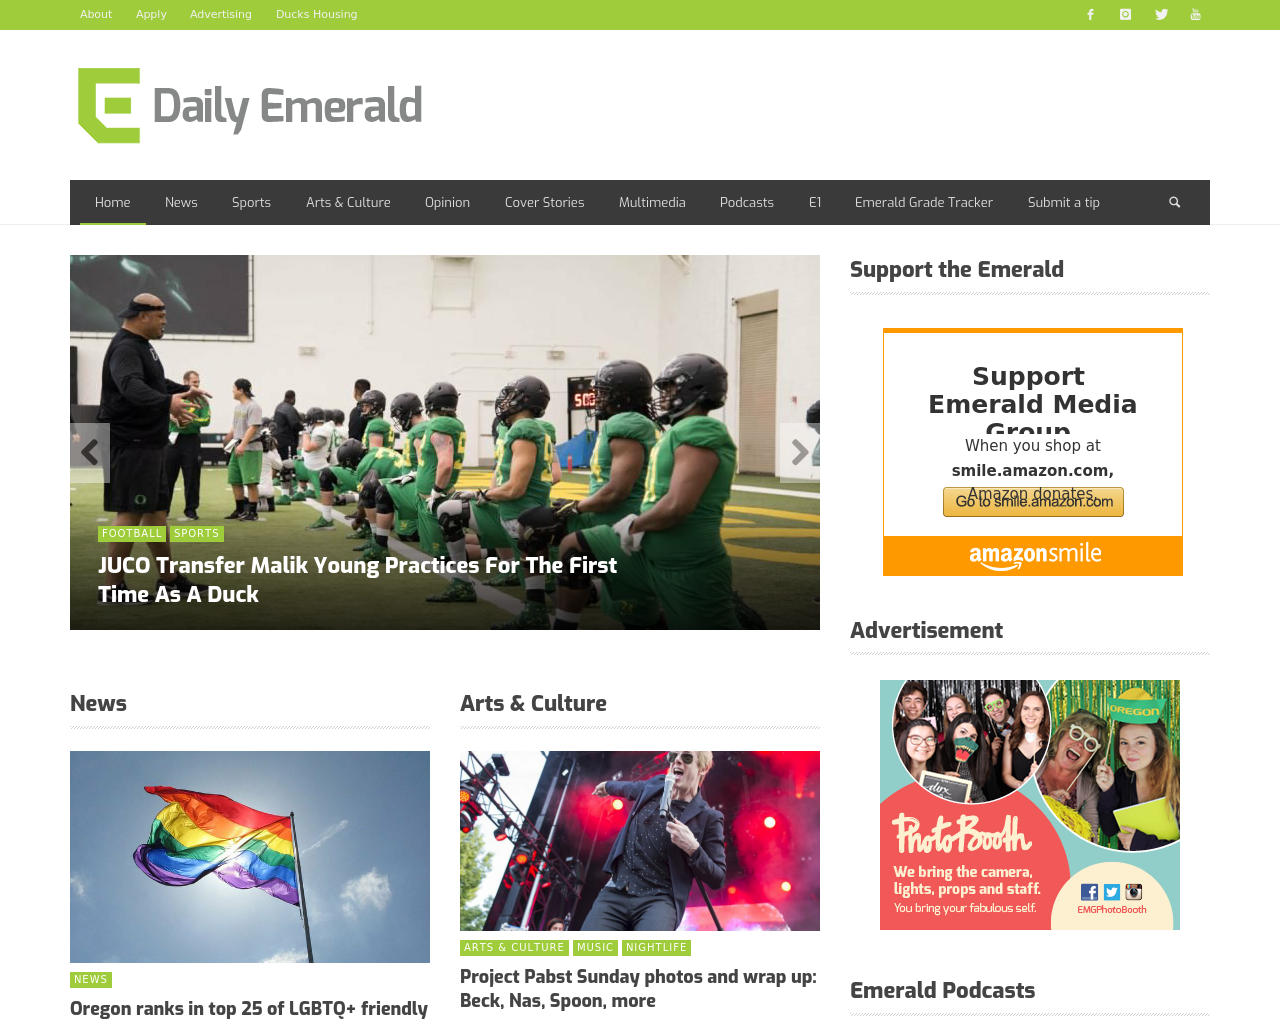 Daily-Emerald-Advertising-Reviews-Pricing